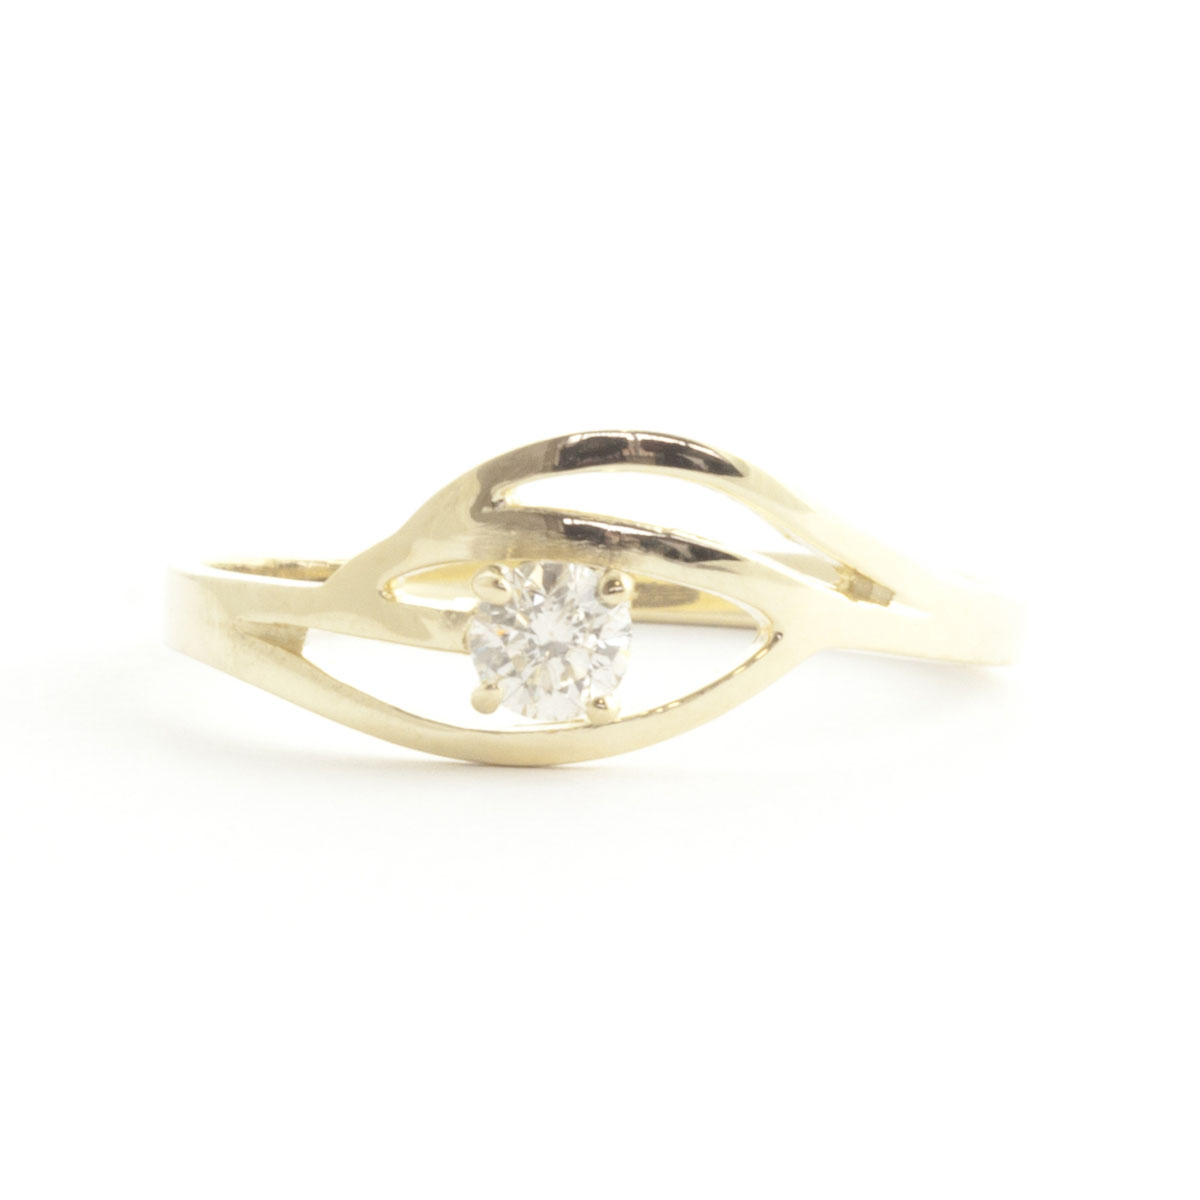 Round Cut Diamond Ring 0.15 ct in 9ct Gold